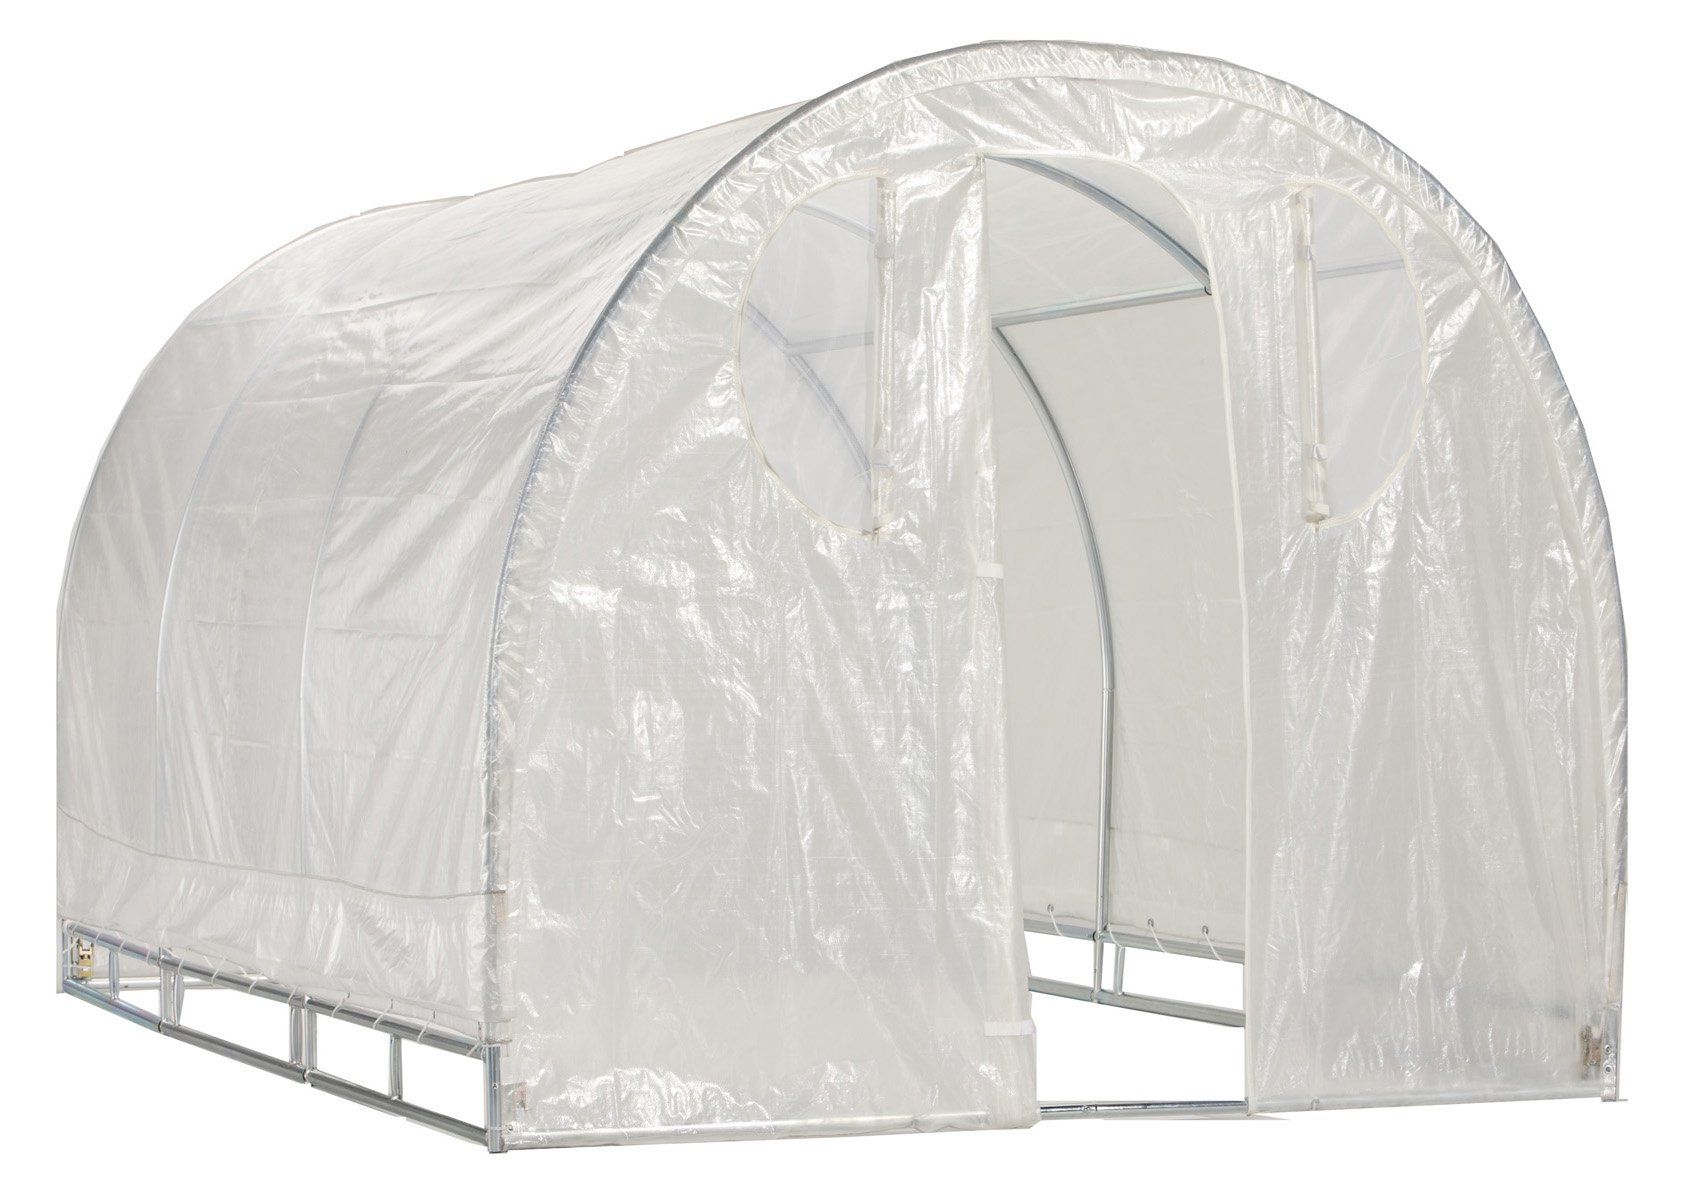 Greenhouse-Weatherguard Walk In Arched Top Garden Hot House Fully Enclosed - Screend Windows for Ventilation, Zippered Door (6'W x 12'L x 6'6''H) Small Hobby Greenhouse for large decks, patios, porches, backyards